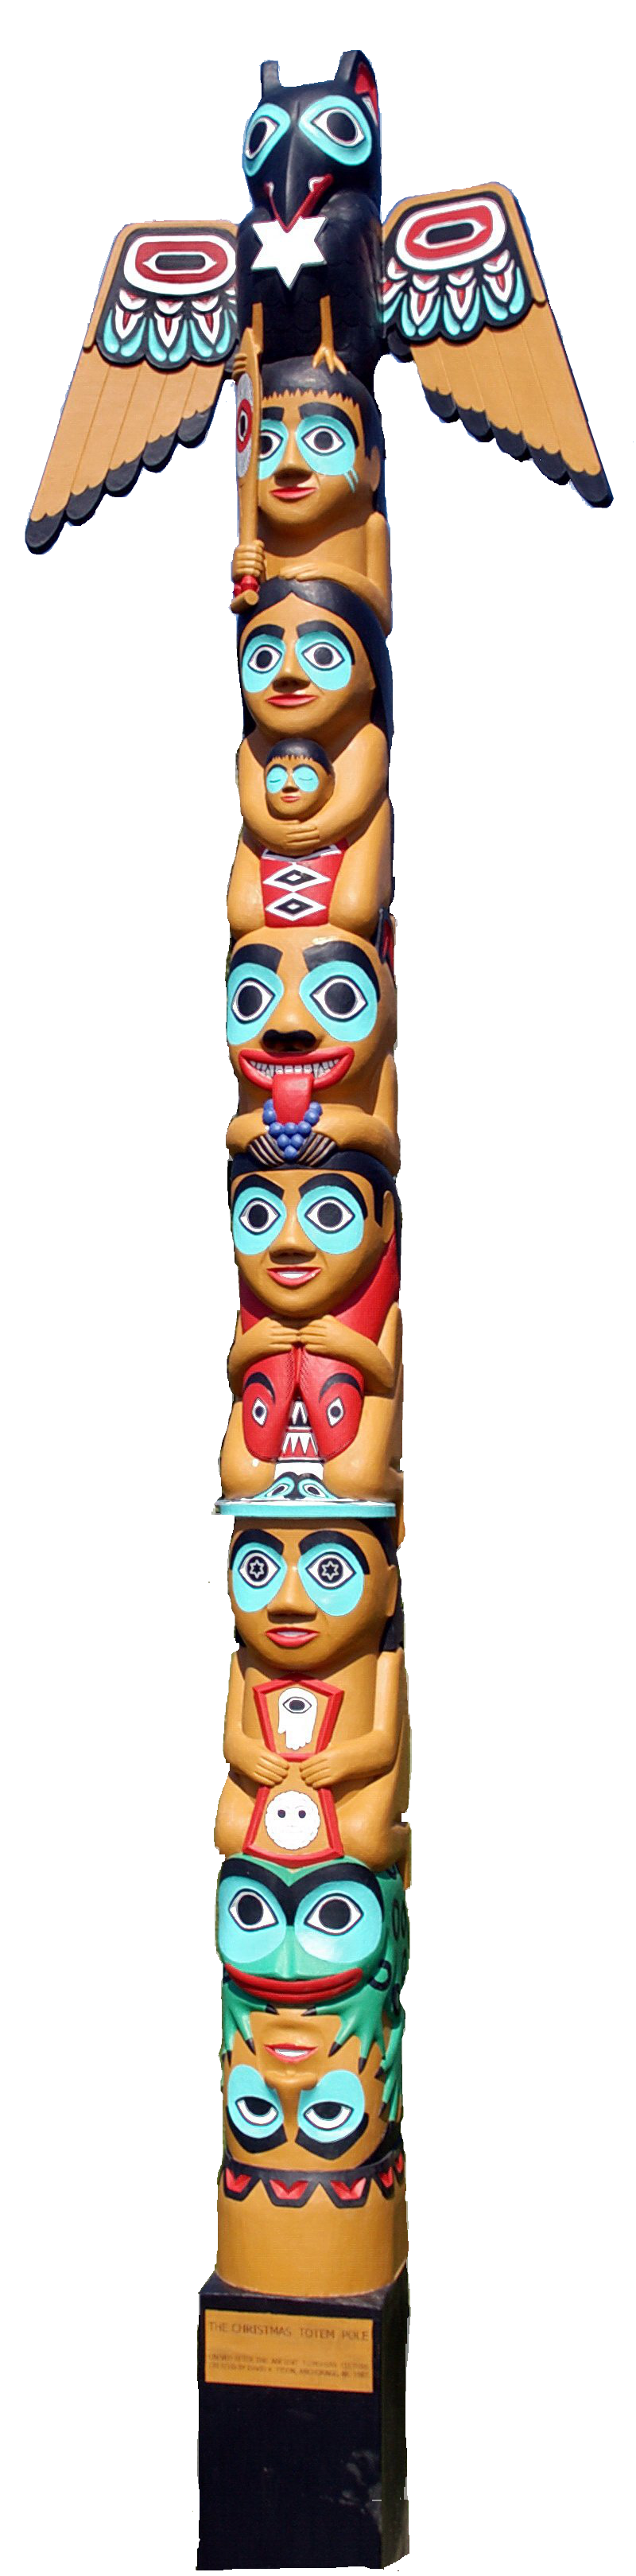 Native American clipart totem pole A the Indians Being had